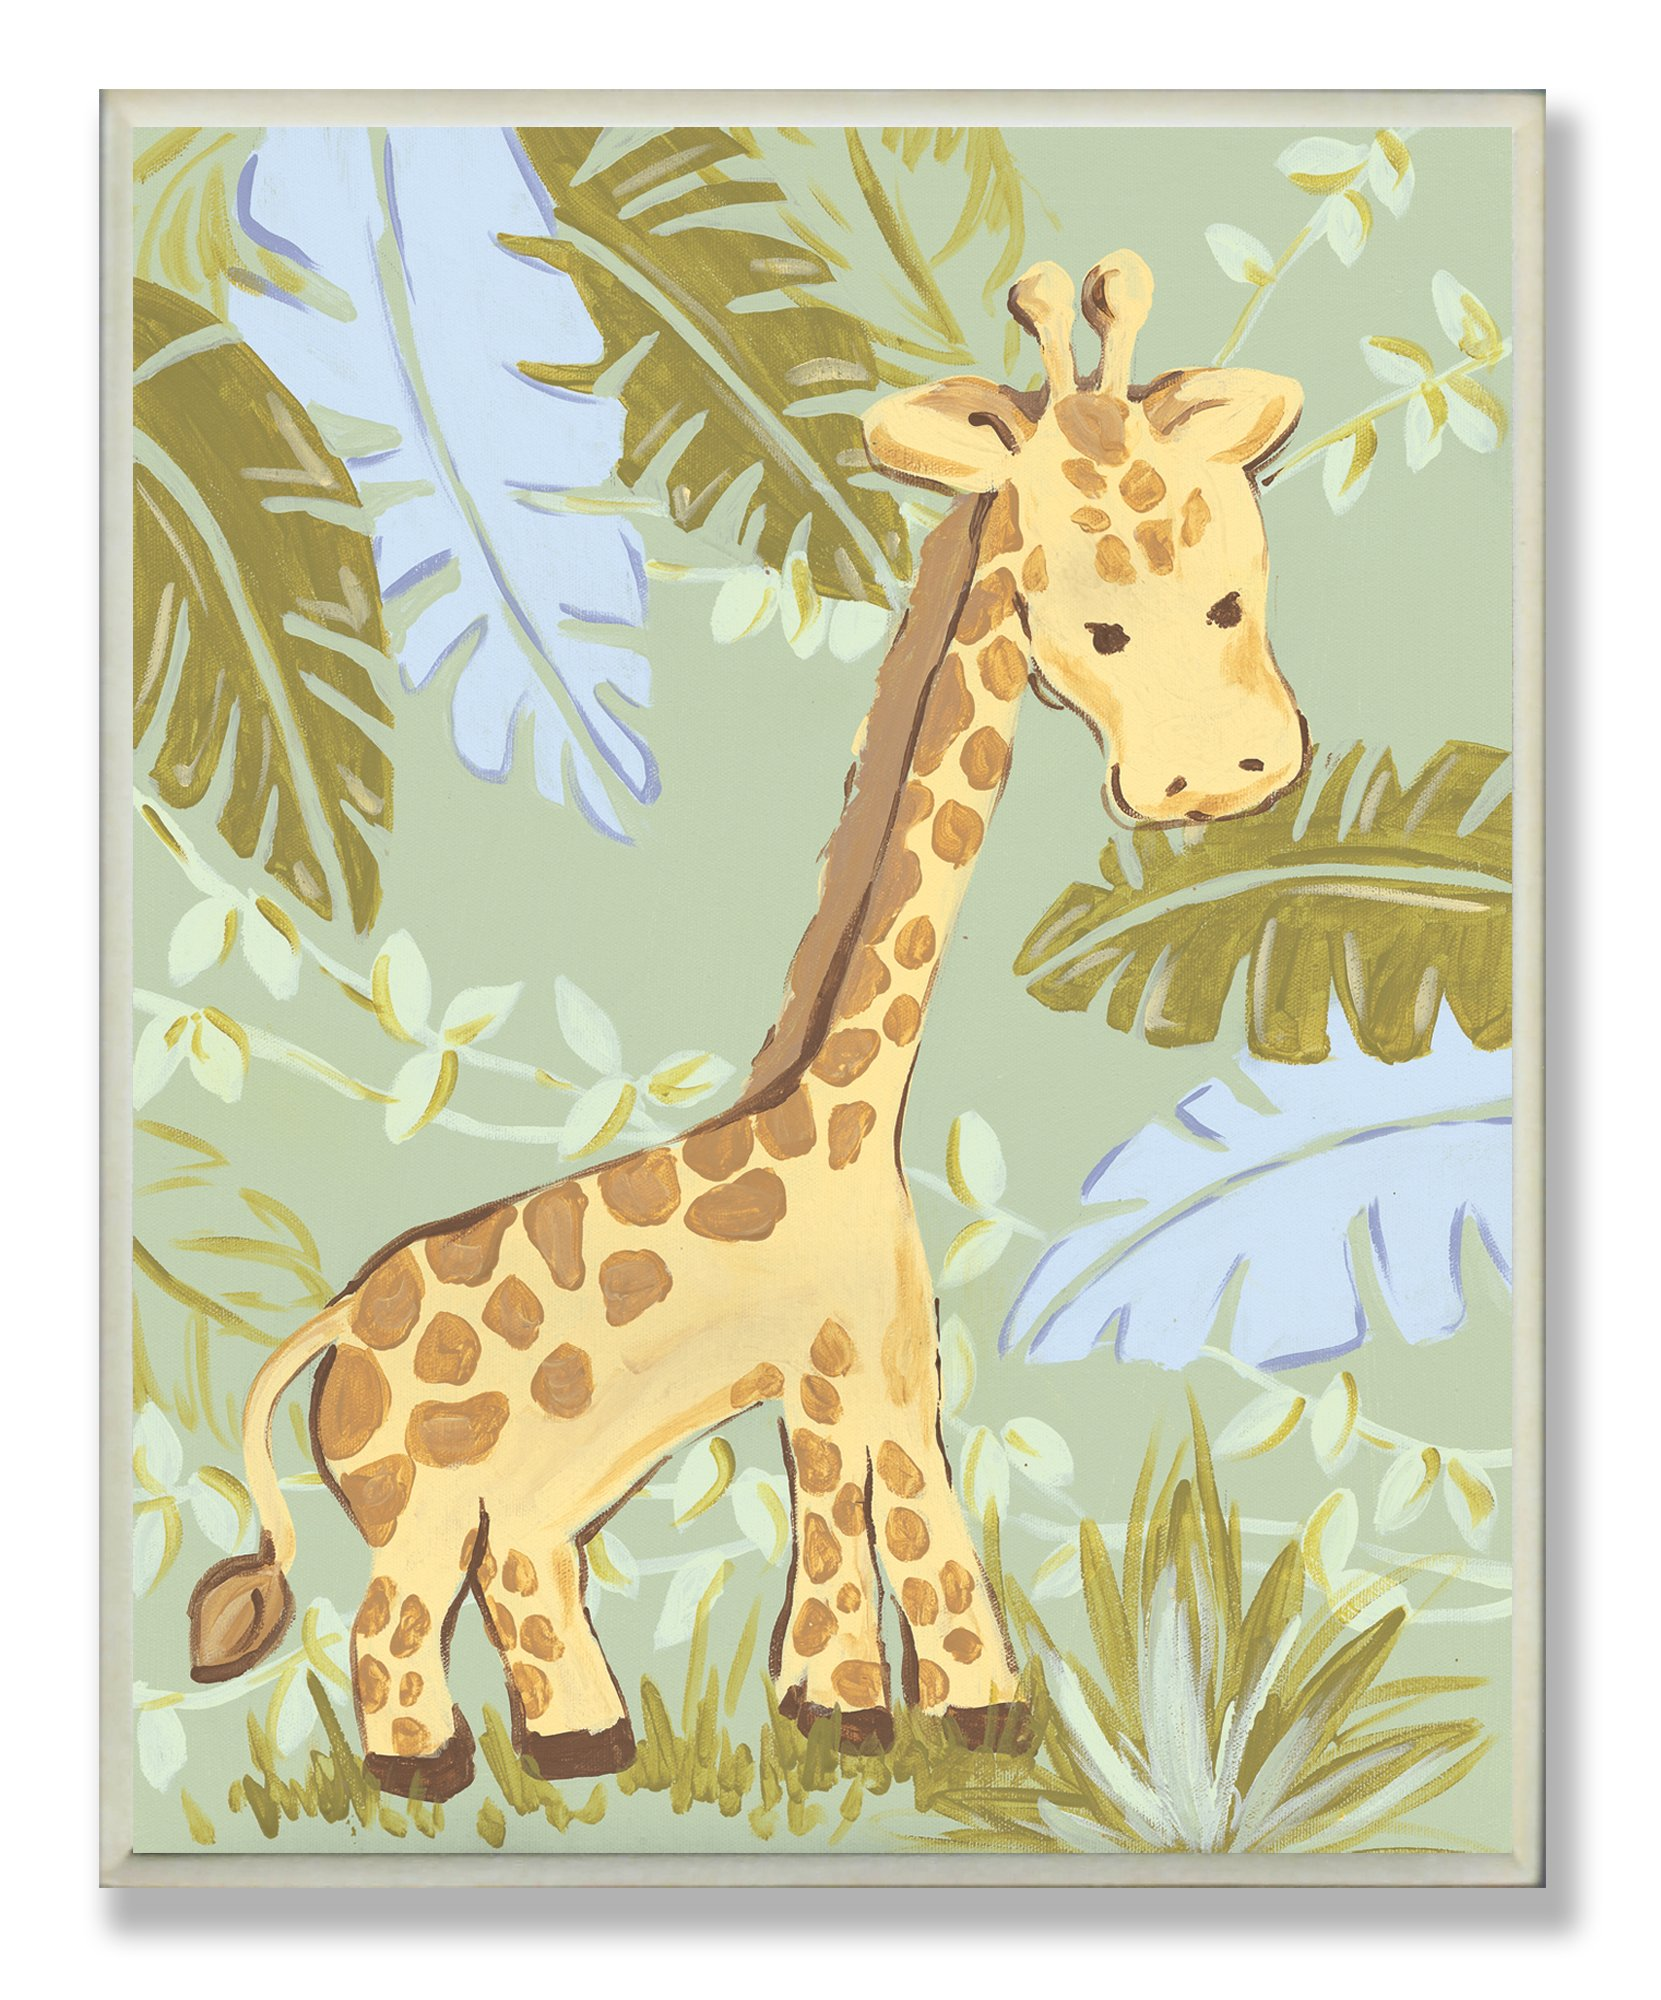 The Kids Room by Stupell Giraffe in The Jungle Rectangle Wall Plaque by The Kids Room by Stupell